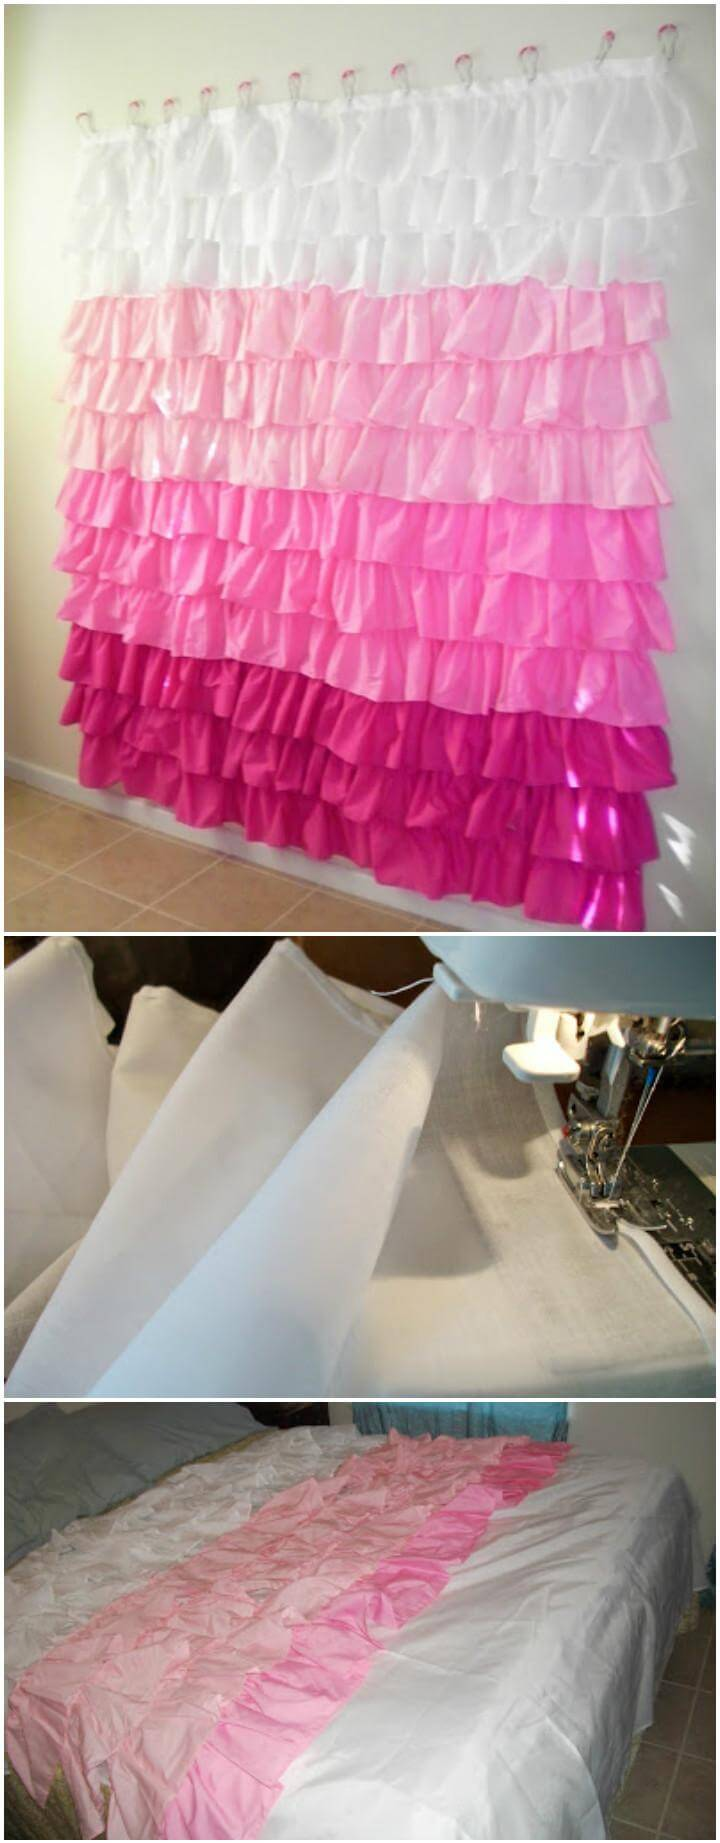 Cool DIY oodles of ruffles shower curtain